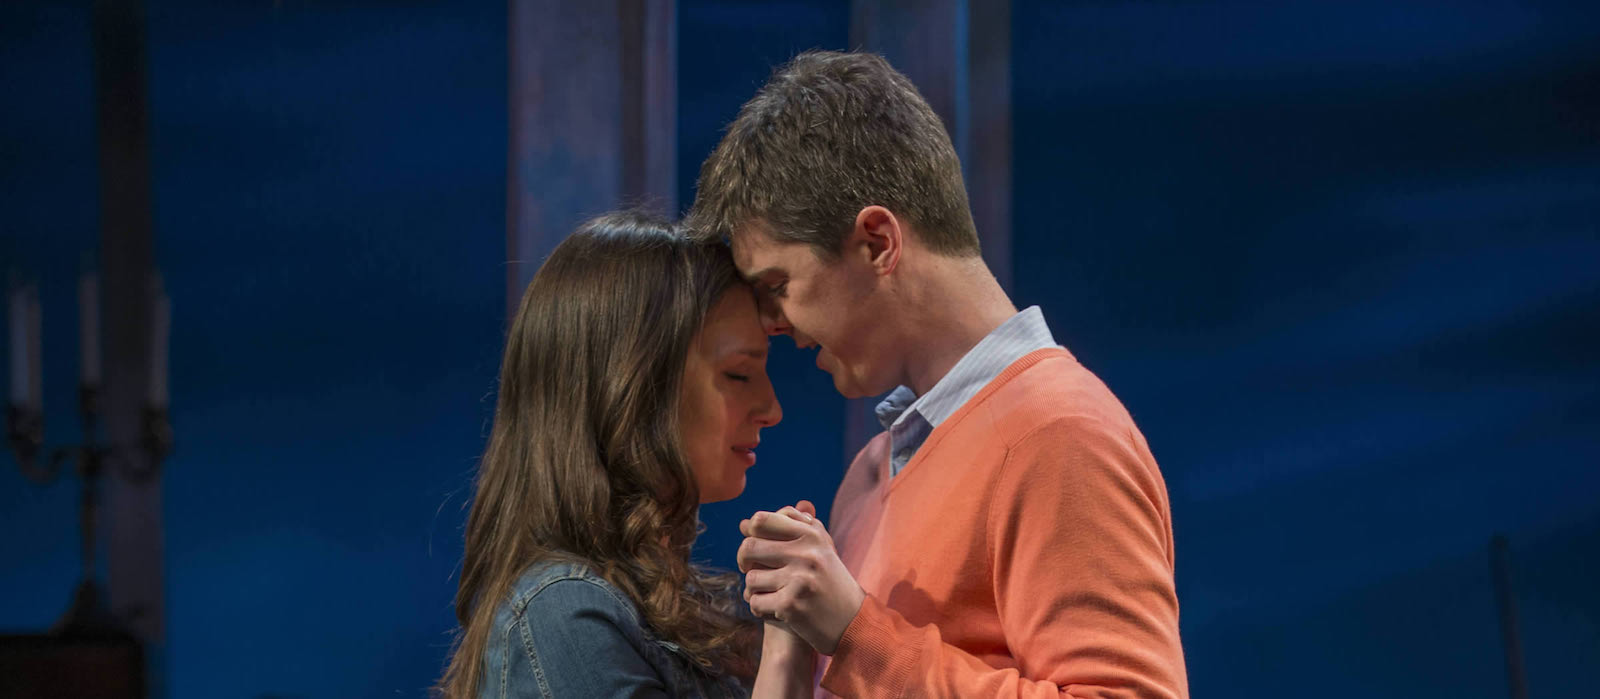 Emily Berman (Tessa) and Jarrod Zimmerman (Arnaud) singing Ten Thousand Times from Days Like Today